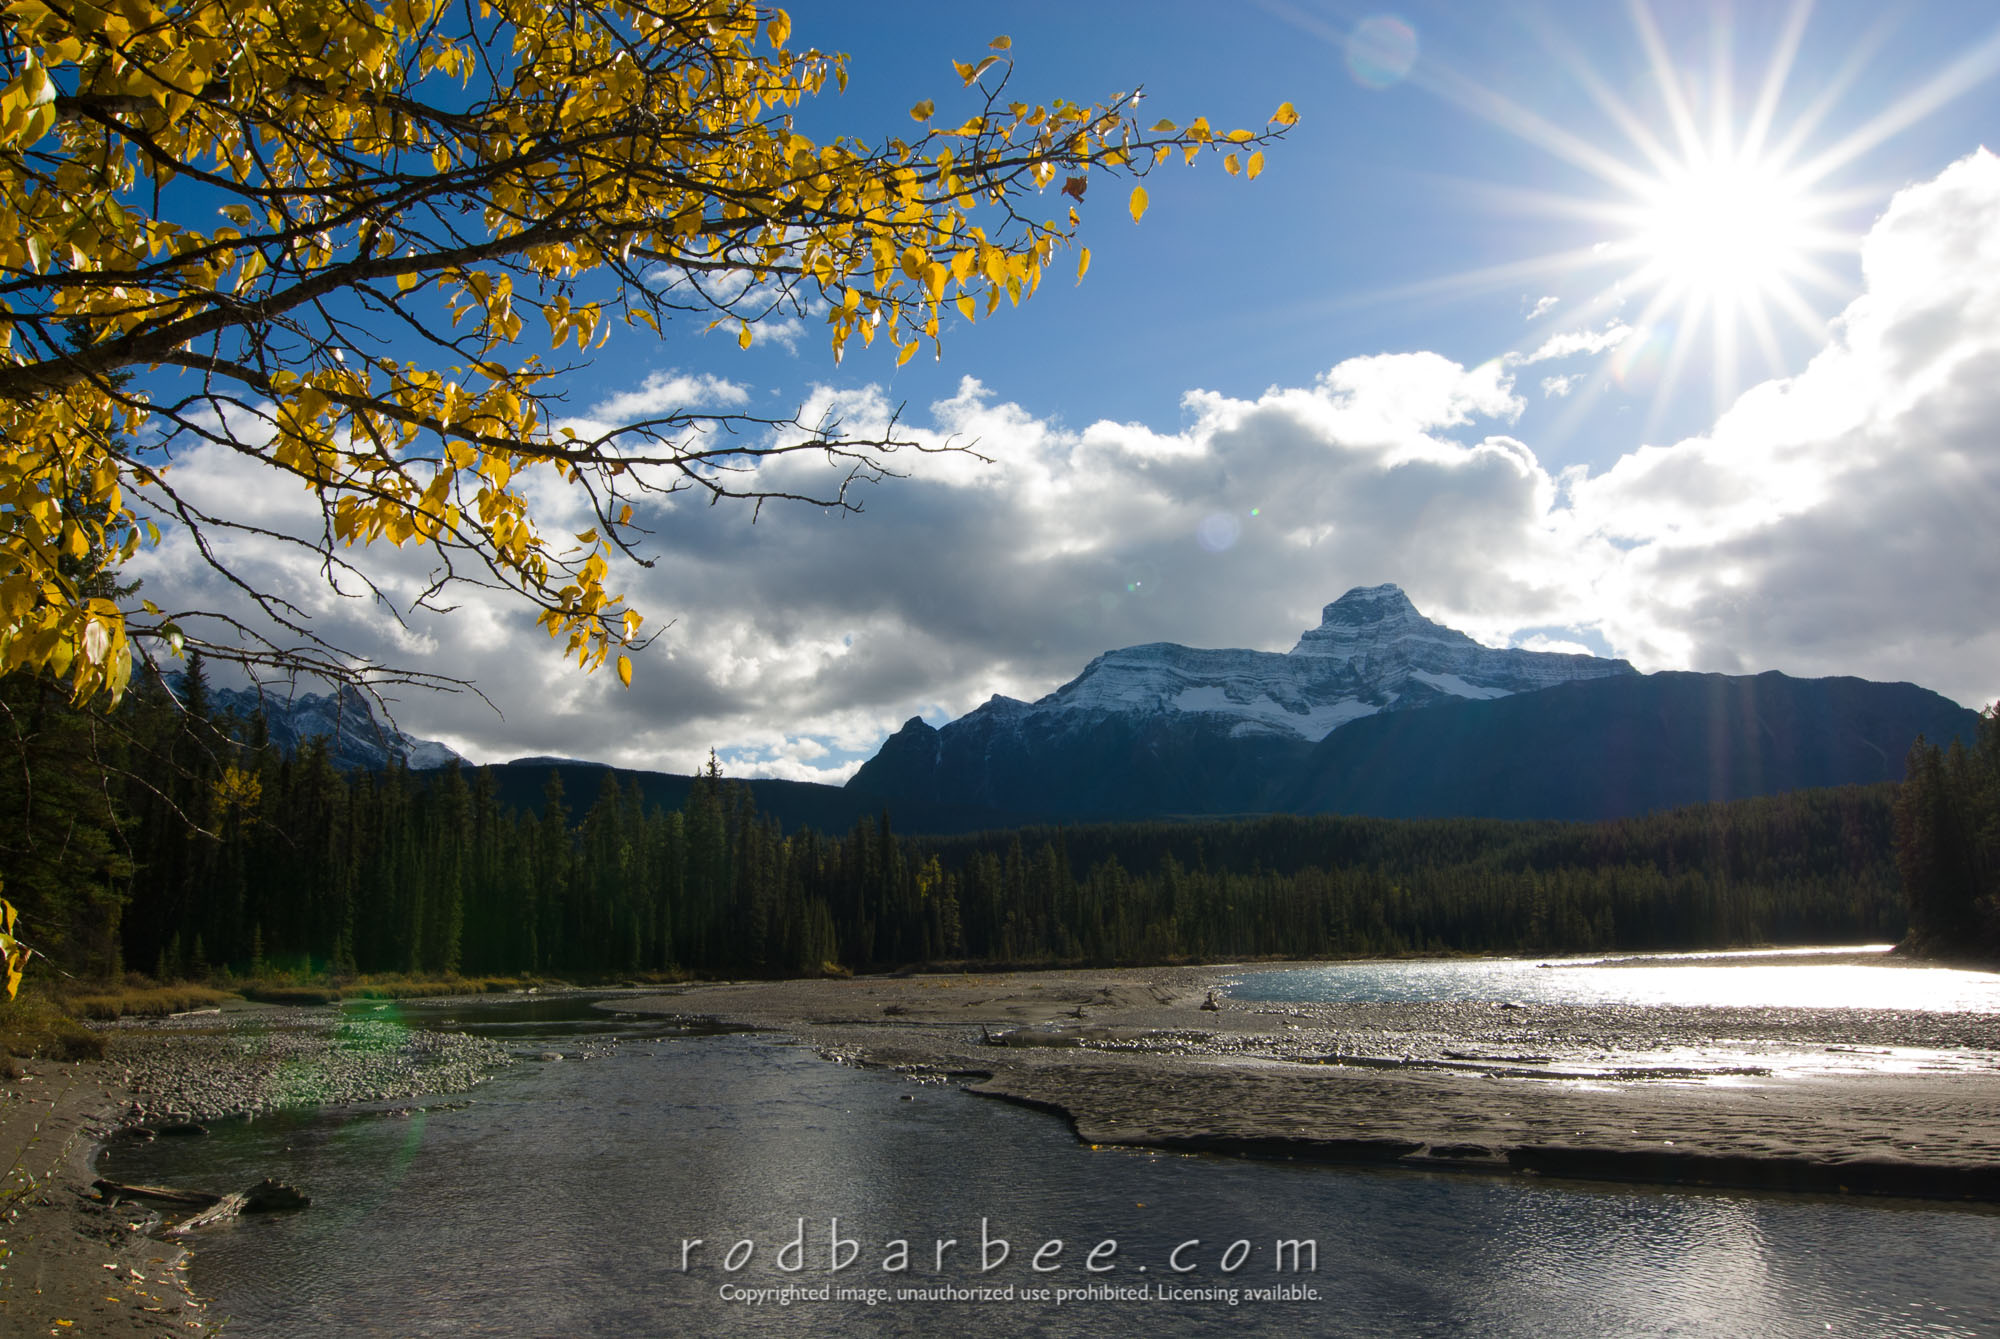 Barbee_070923_2_0971 |  Autumn scenery along the Icefields Parkway